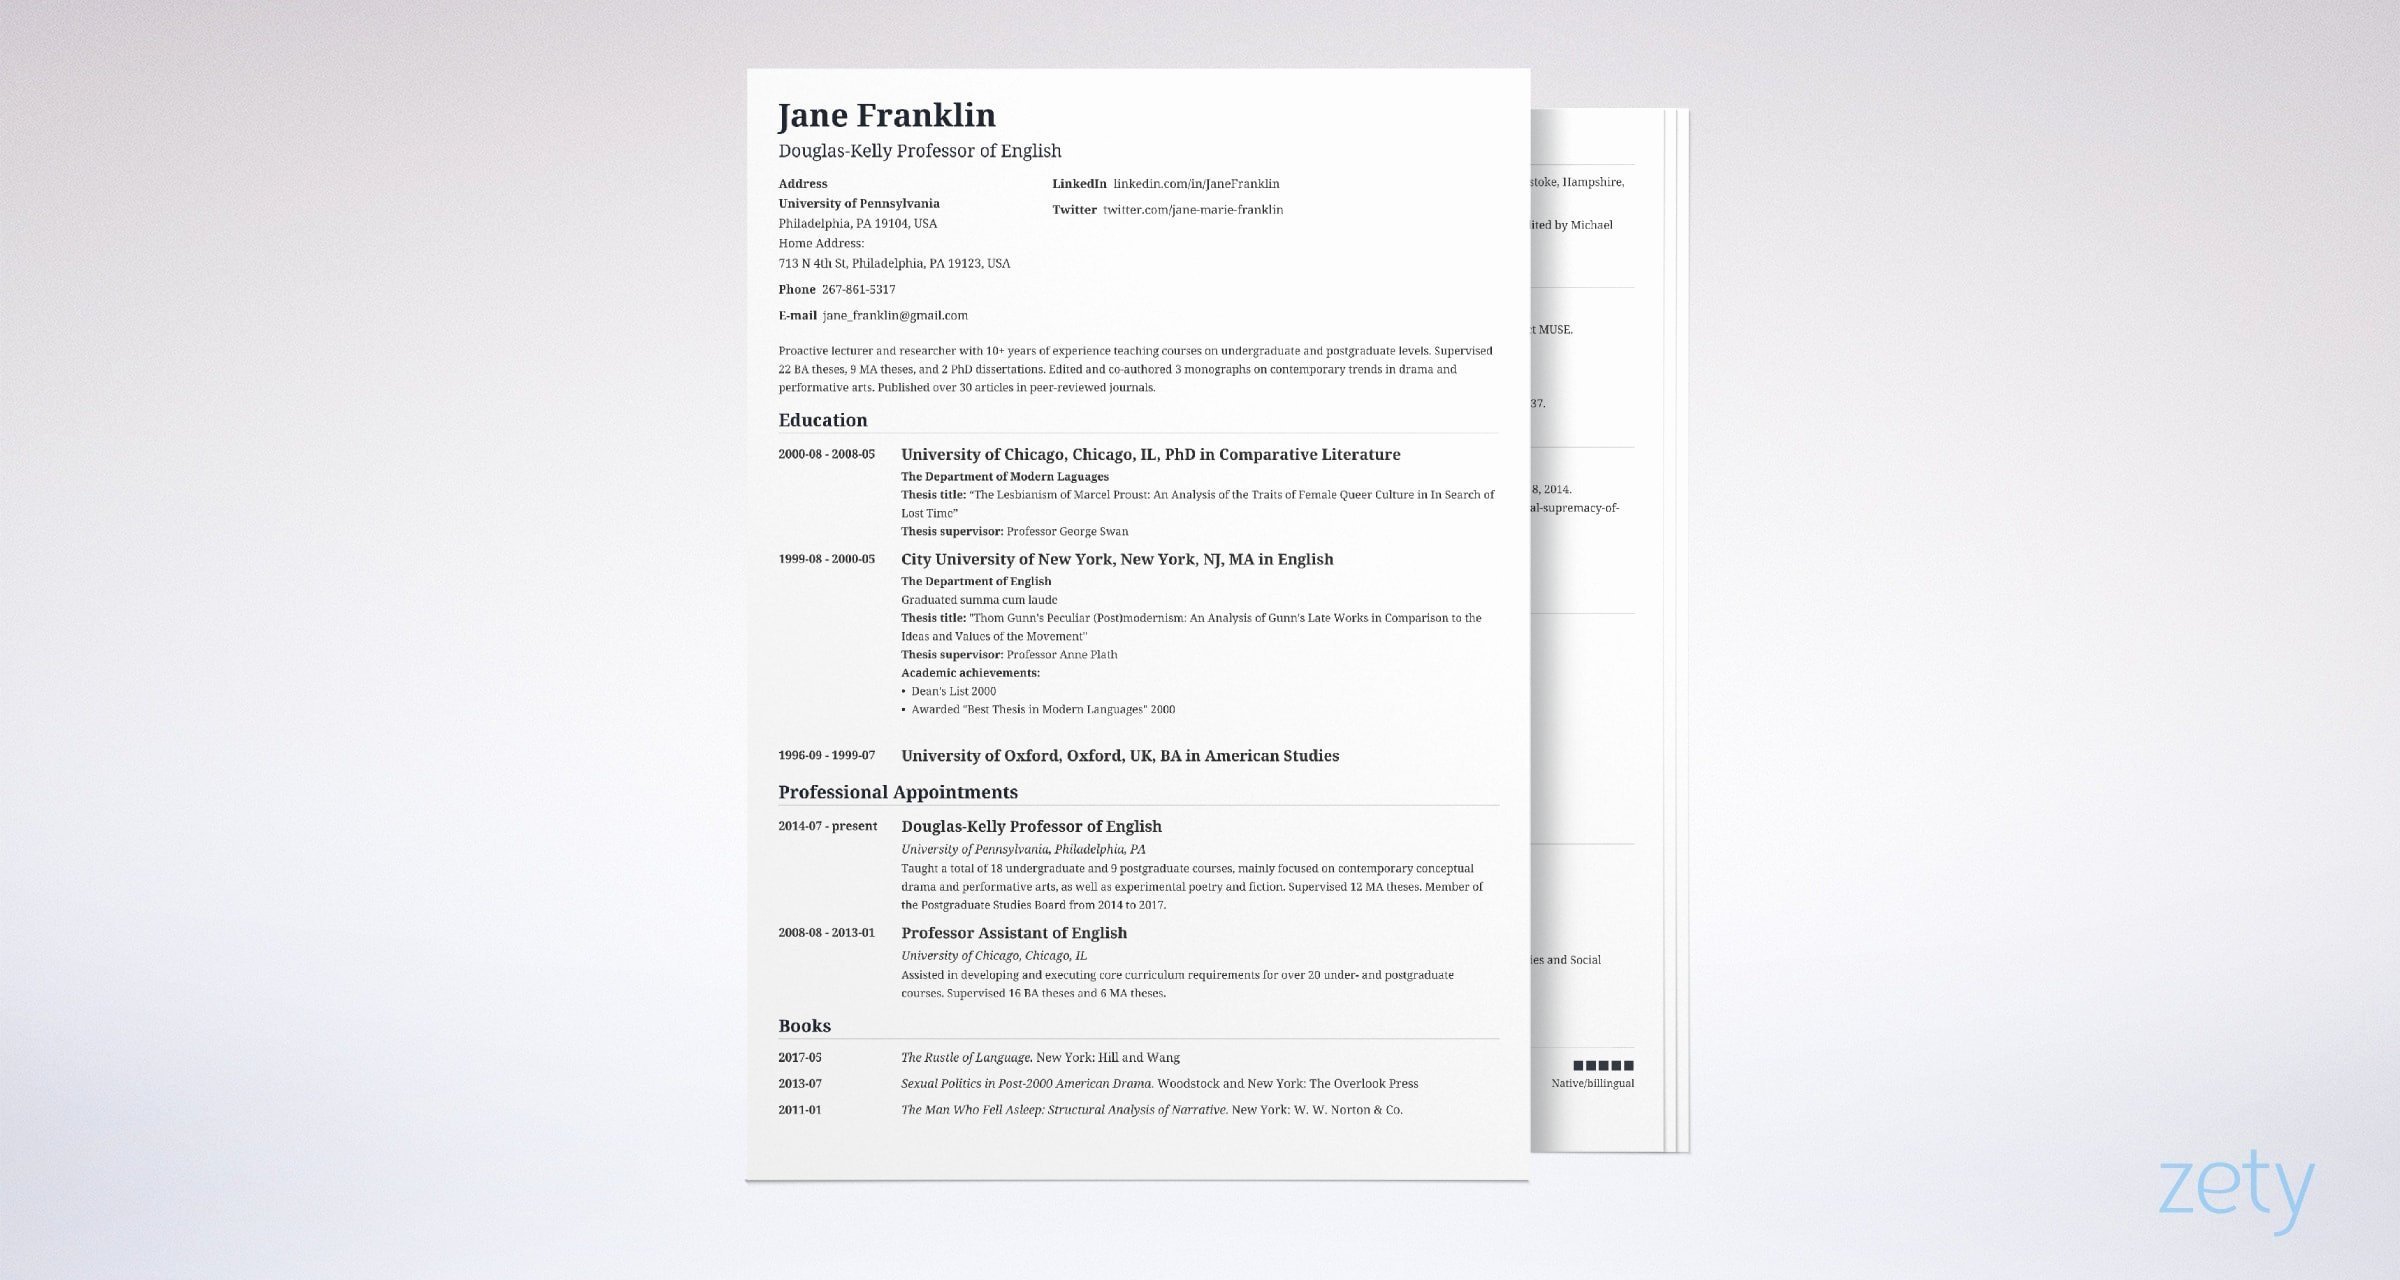 Academic Cv Template Word Fresh Cv Vs Resume Difference Definitions & when to Use which